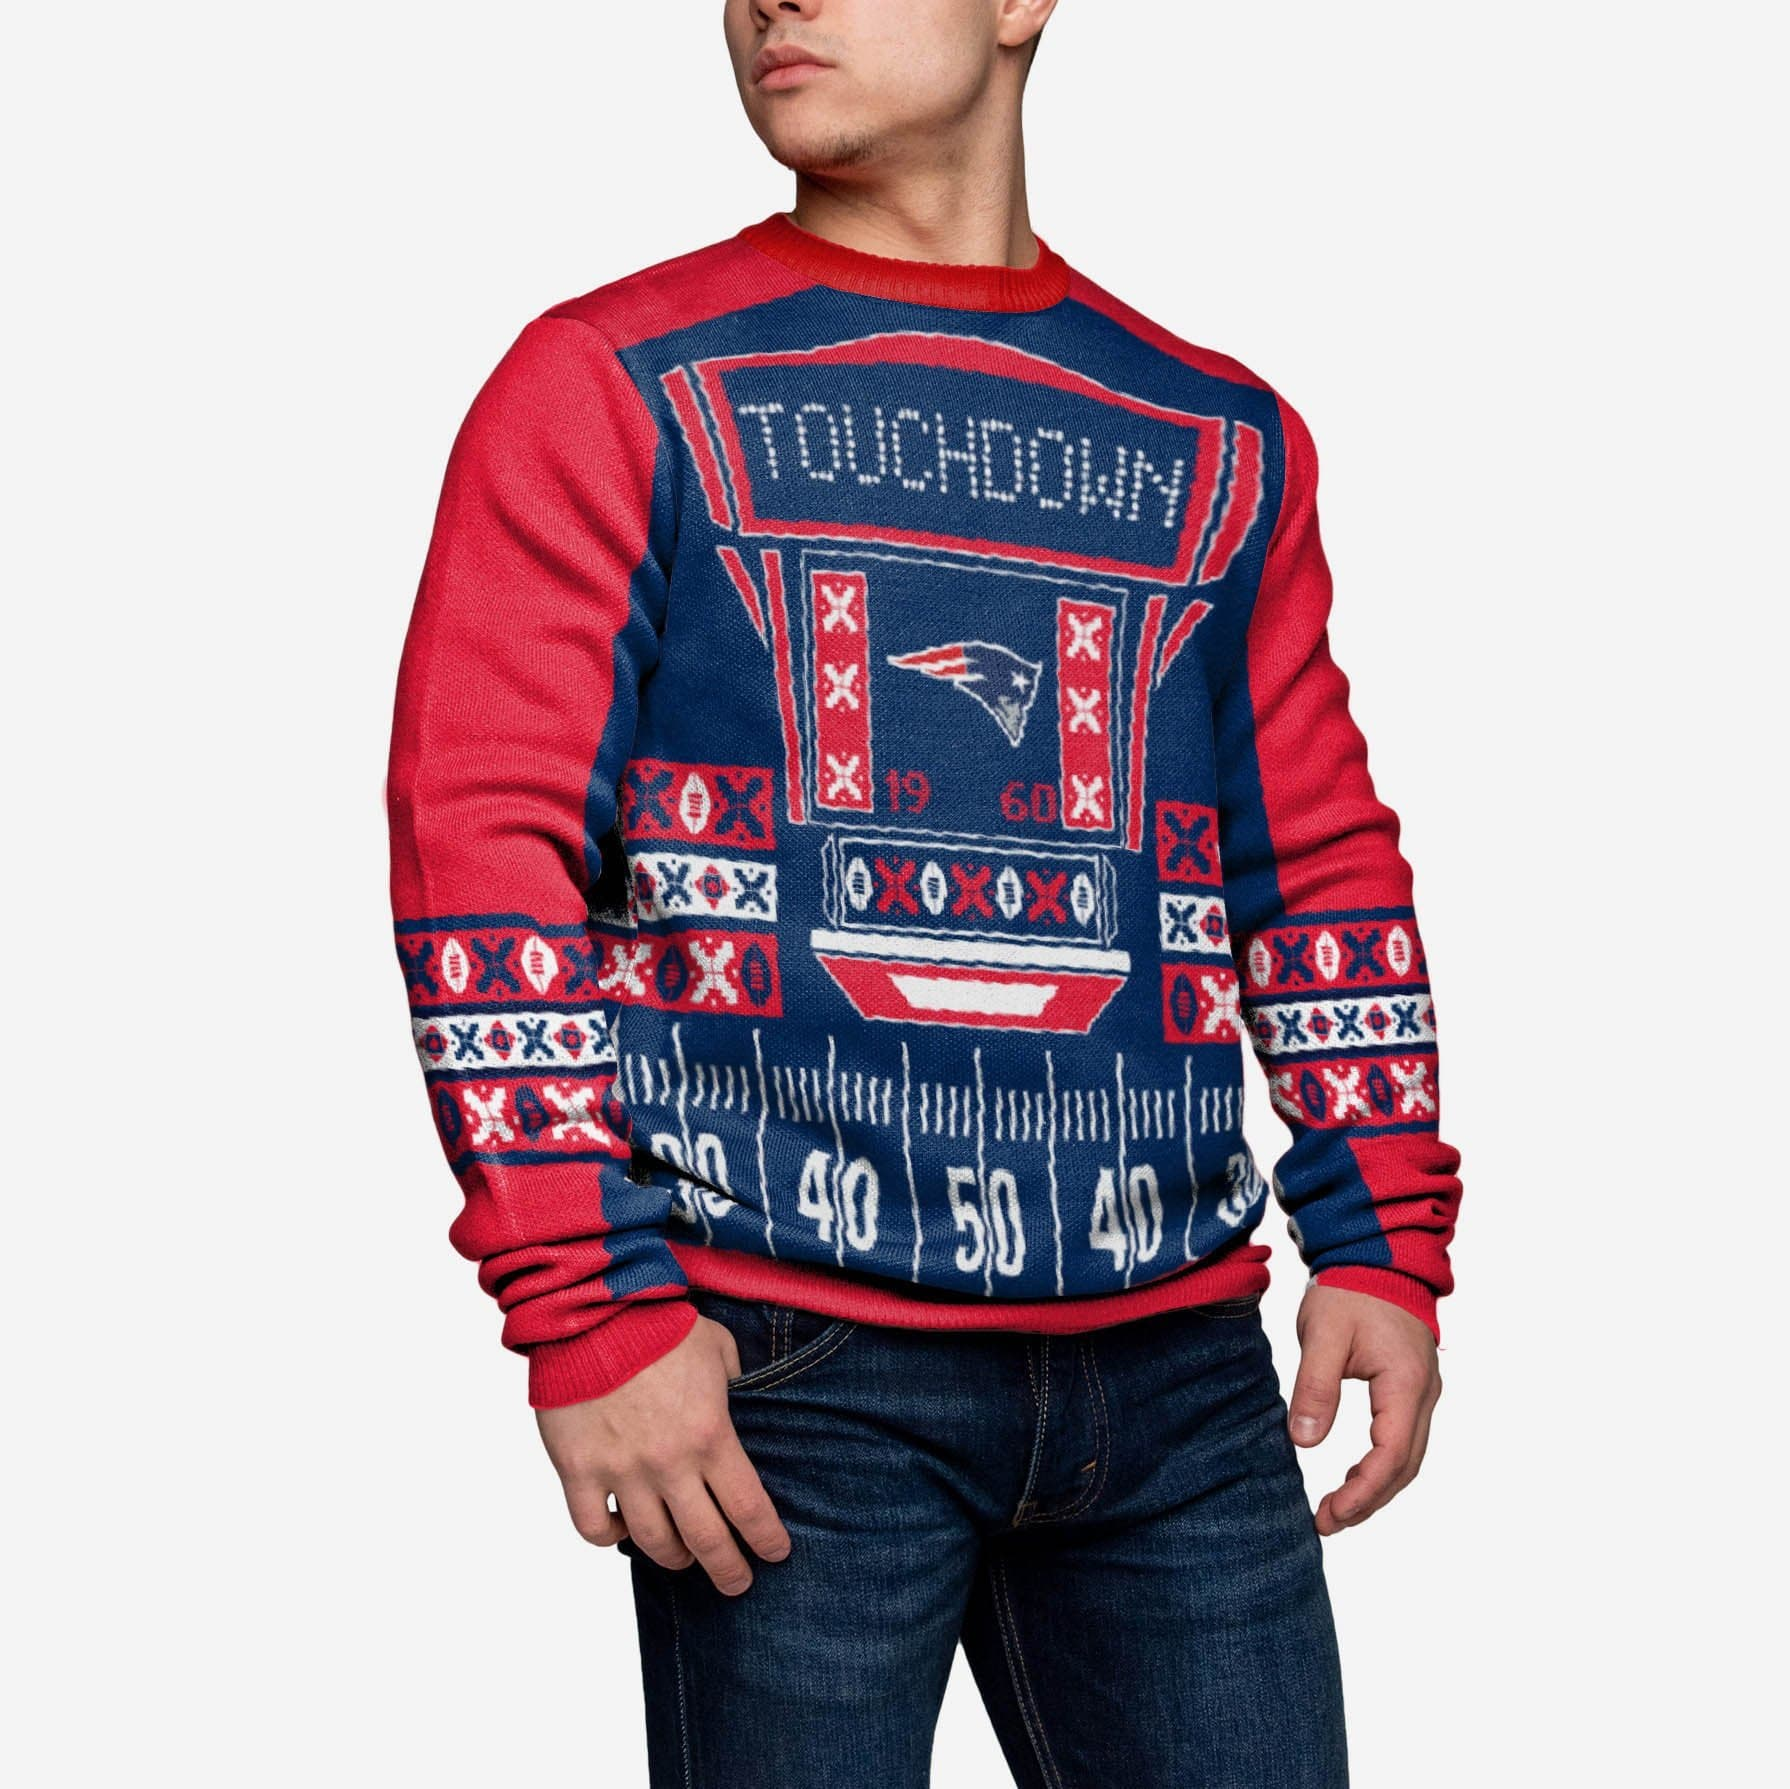 FOCO NCAA Light Up Ugly Sweater